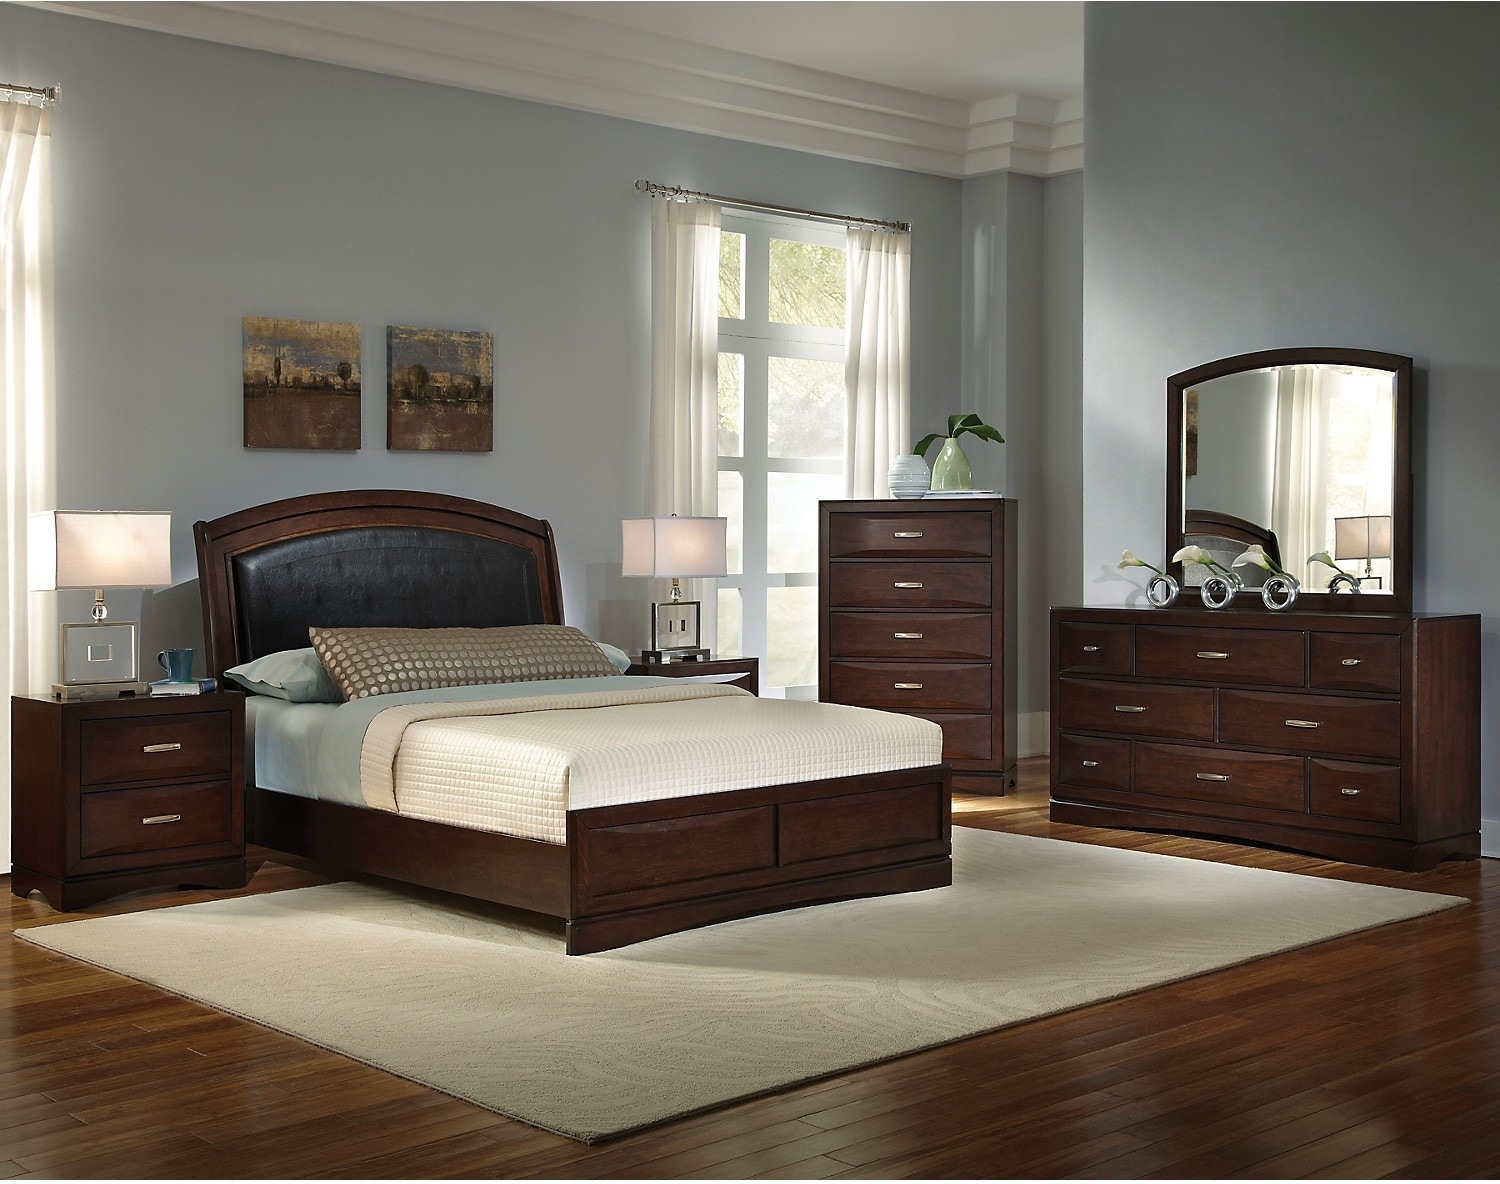 Beverly 8 piece king bedroom set the brick Bedrooms furniture